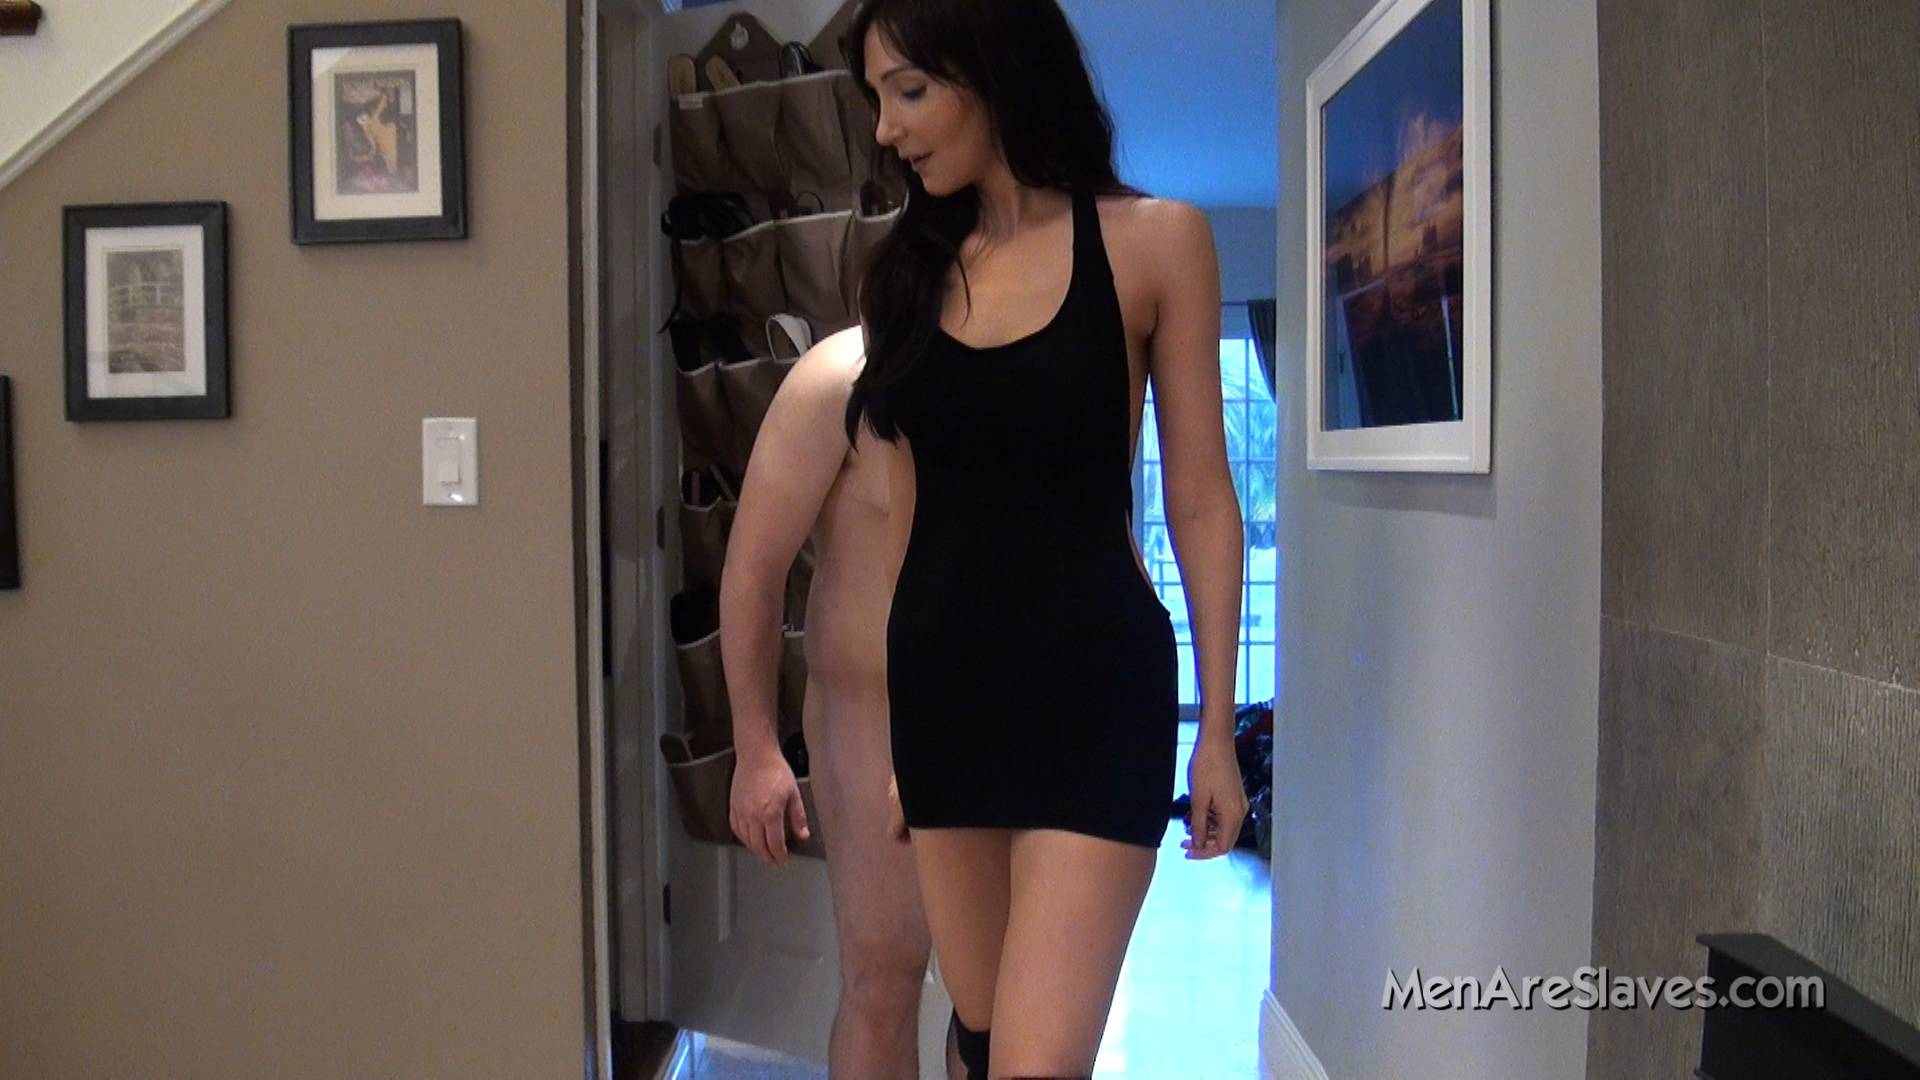 Men Are Slaves Picture Gallery